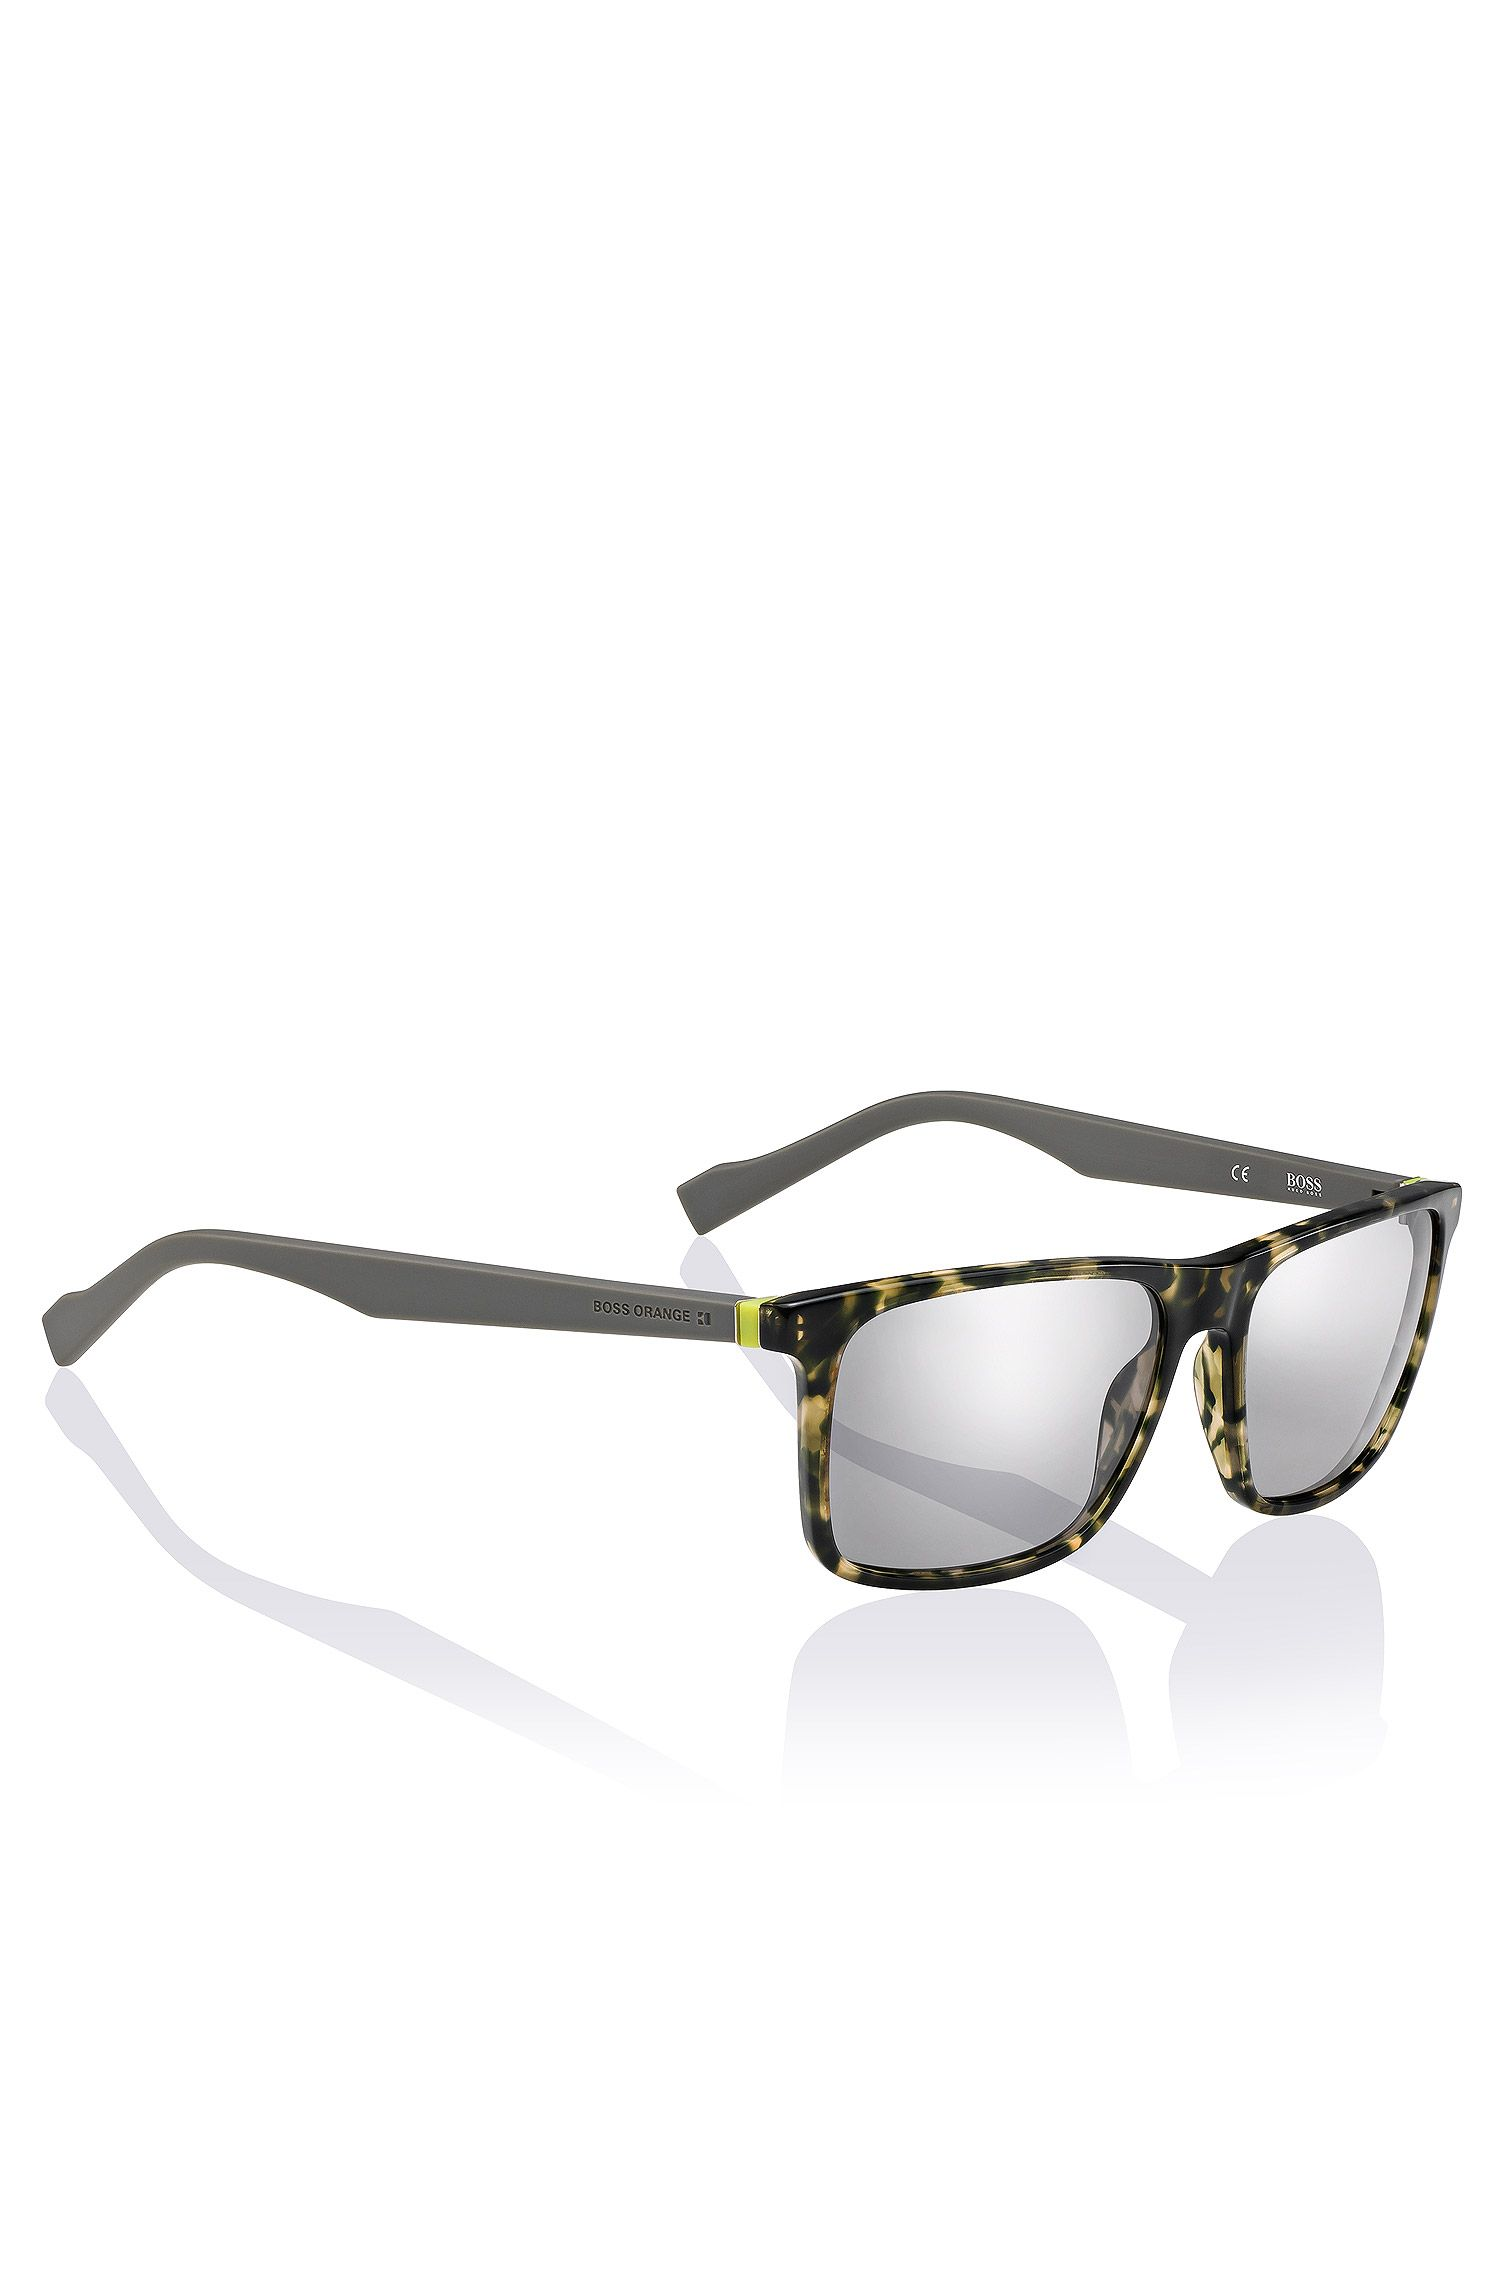 Sunglasses 'BO 0174/S' made of acetate